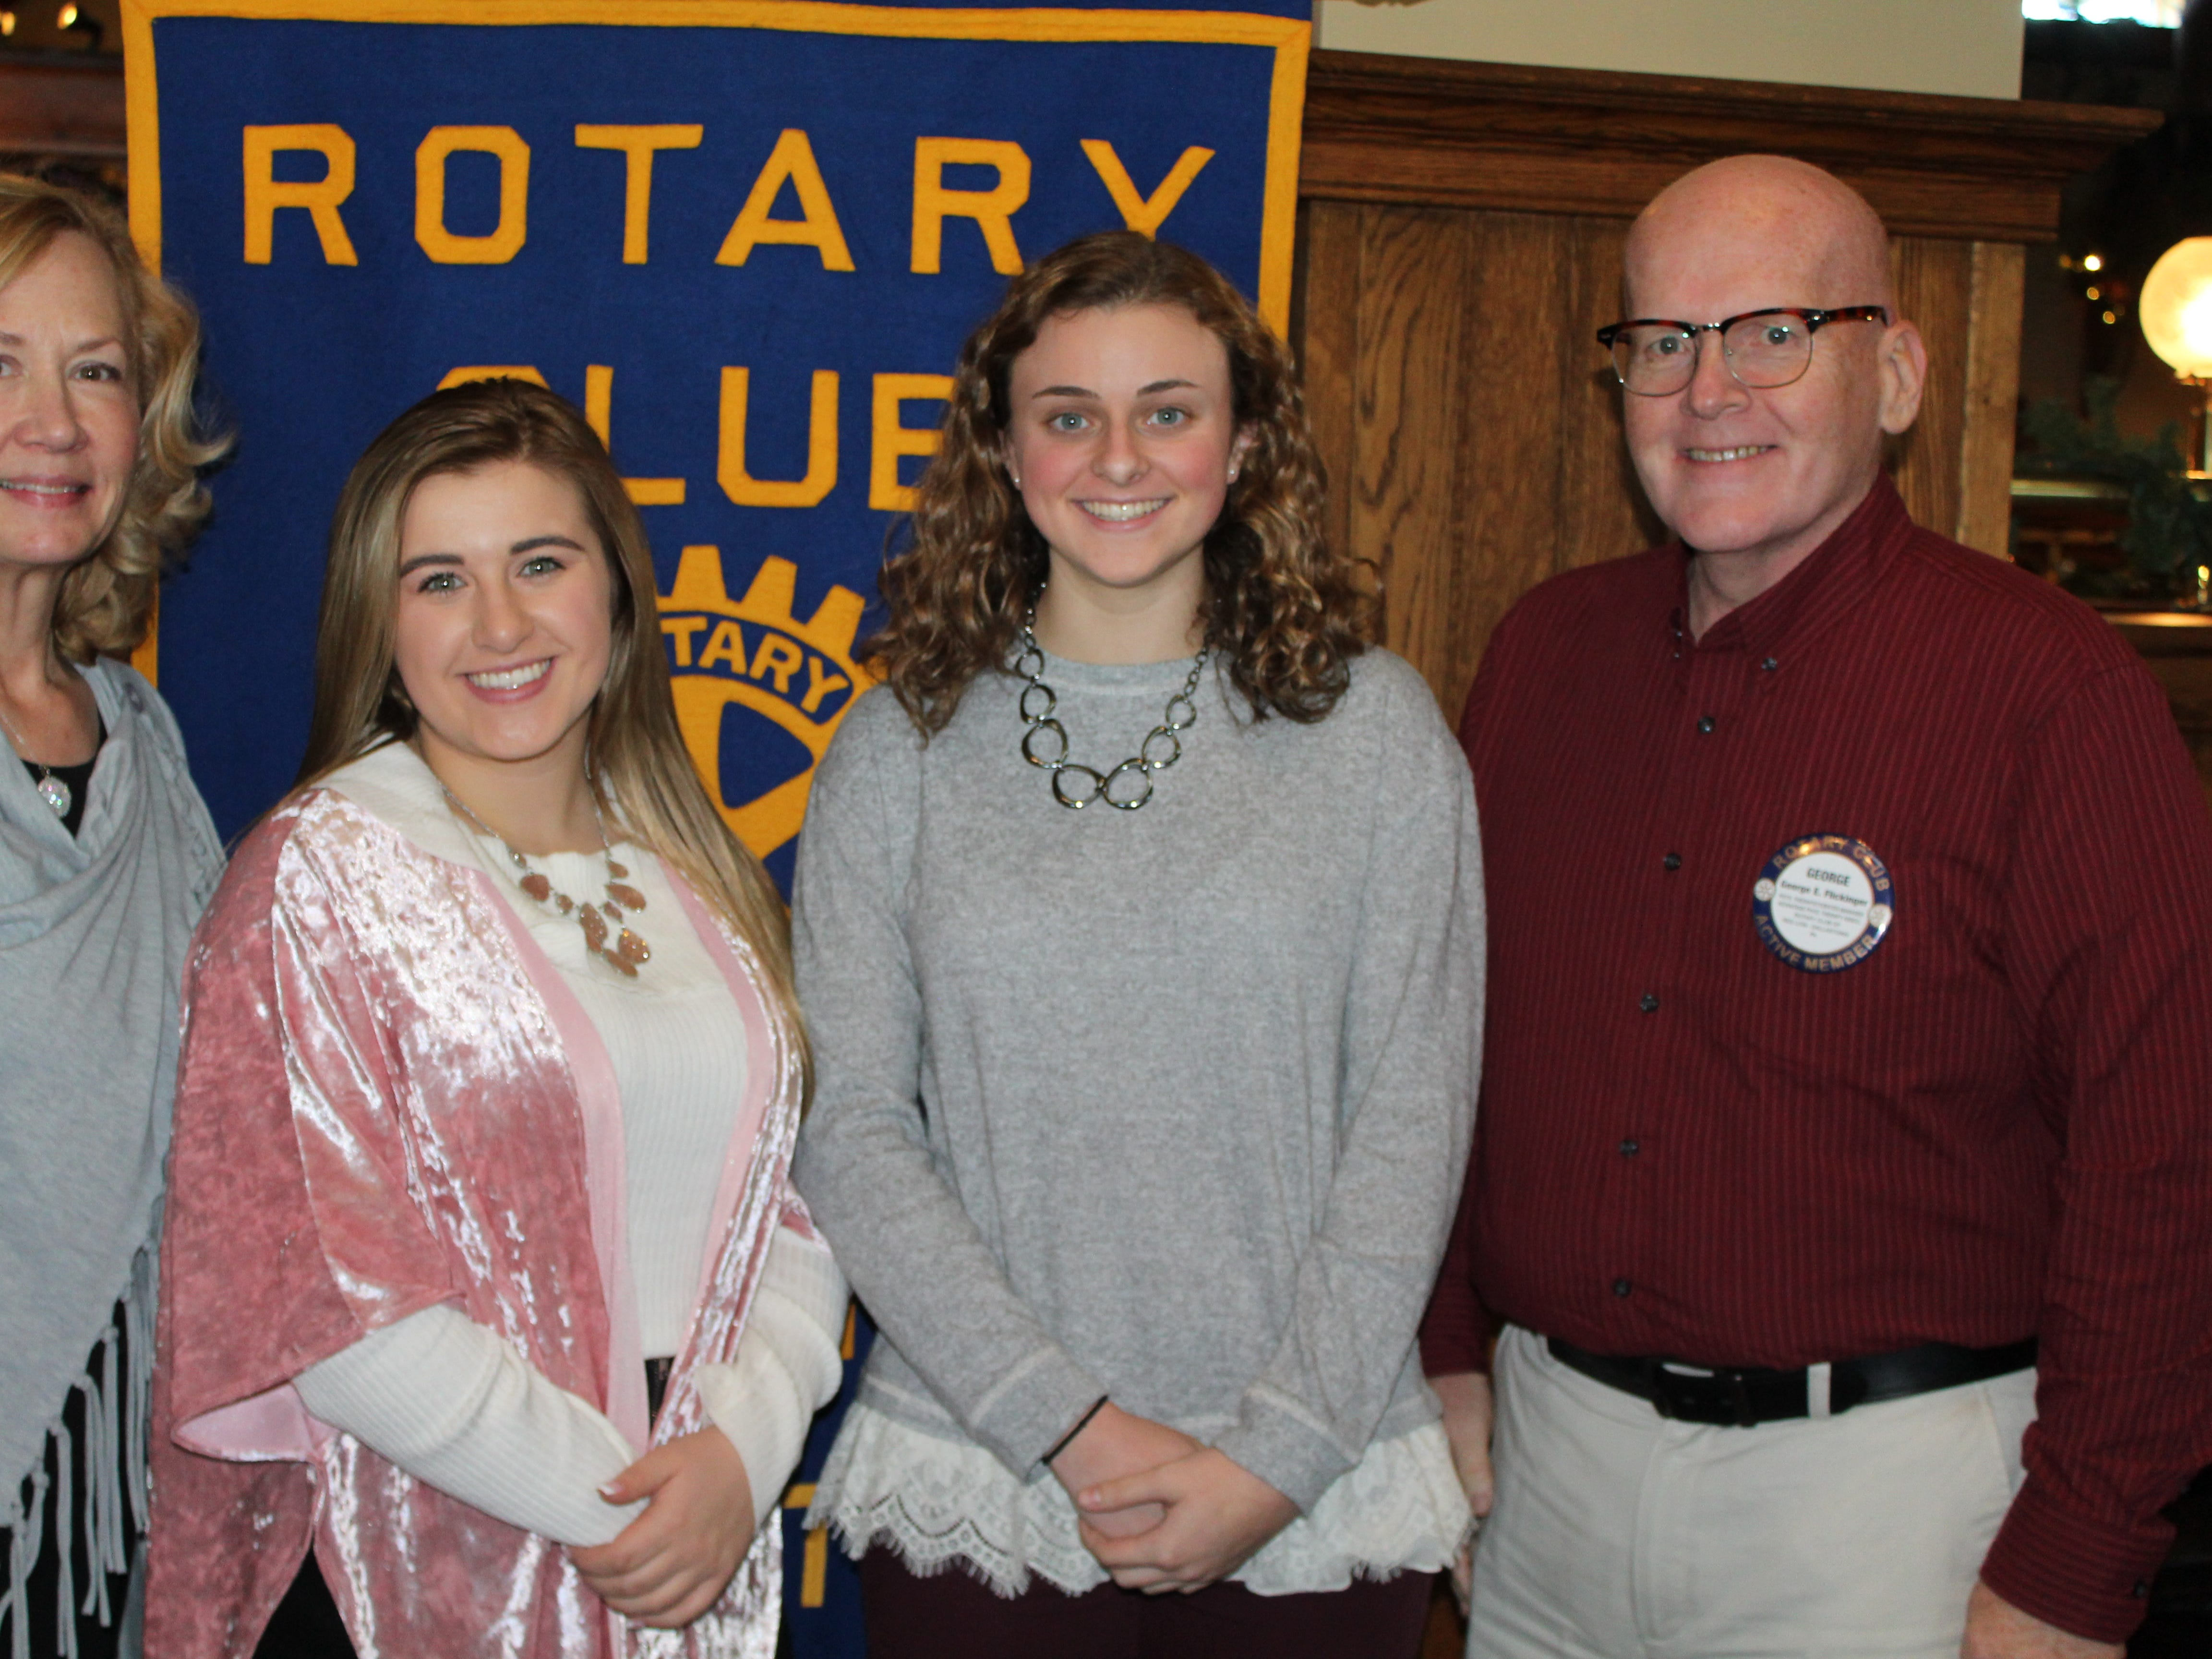 The Rotary Club of Red Lion - Dallastown is pleased to announce their November Students of the Month from Red Lion Area Senior High School. From left, Club member Del McChalicher, student Gianna Dovell, student Emma Hively, and Club member George Flickinger. submitted